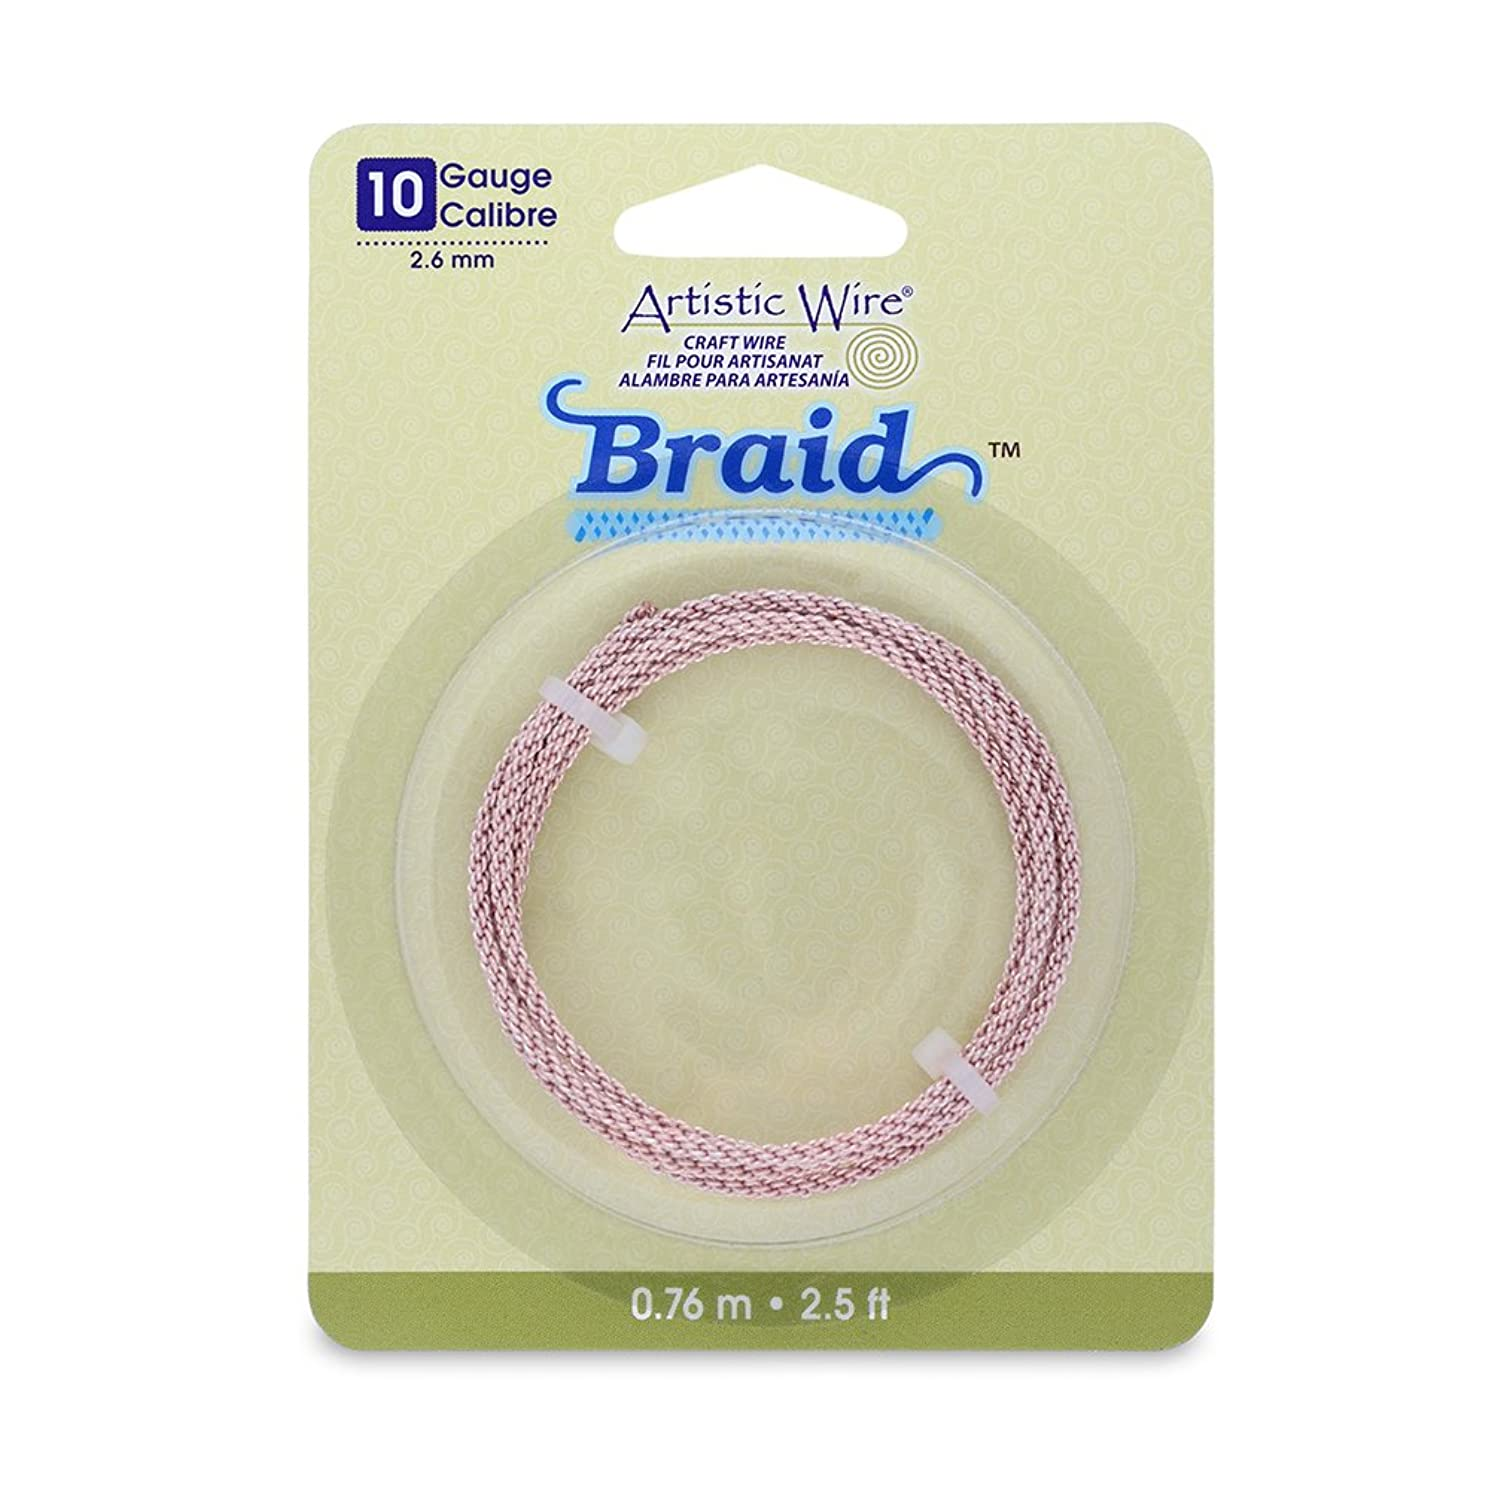 Artistic Wire 10-Gauge Round Braided Jewelry Making Wire, 2.5-Feet, Rose Gold